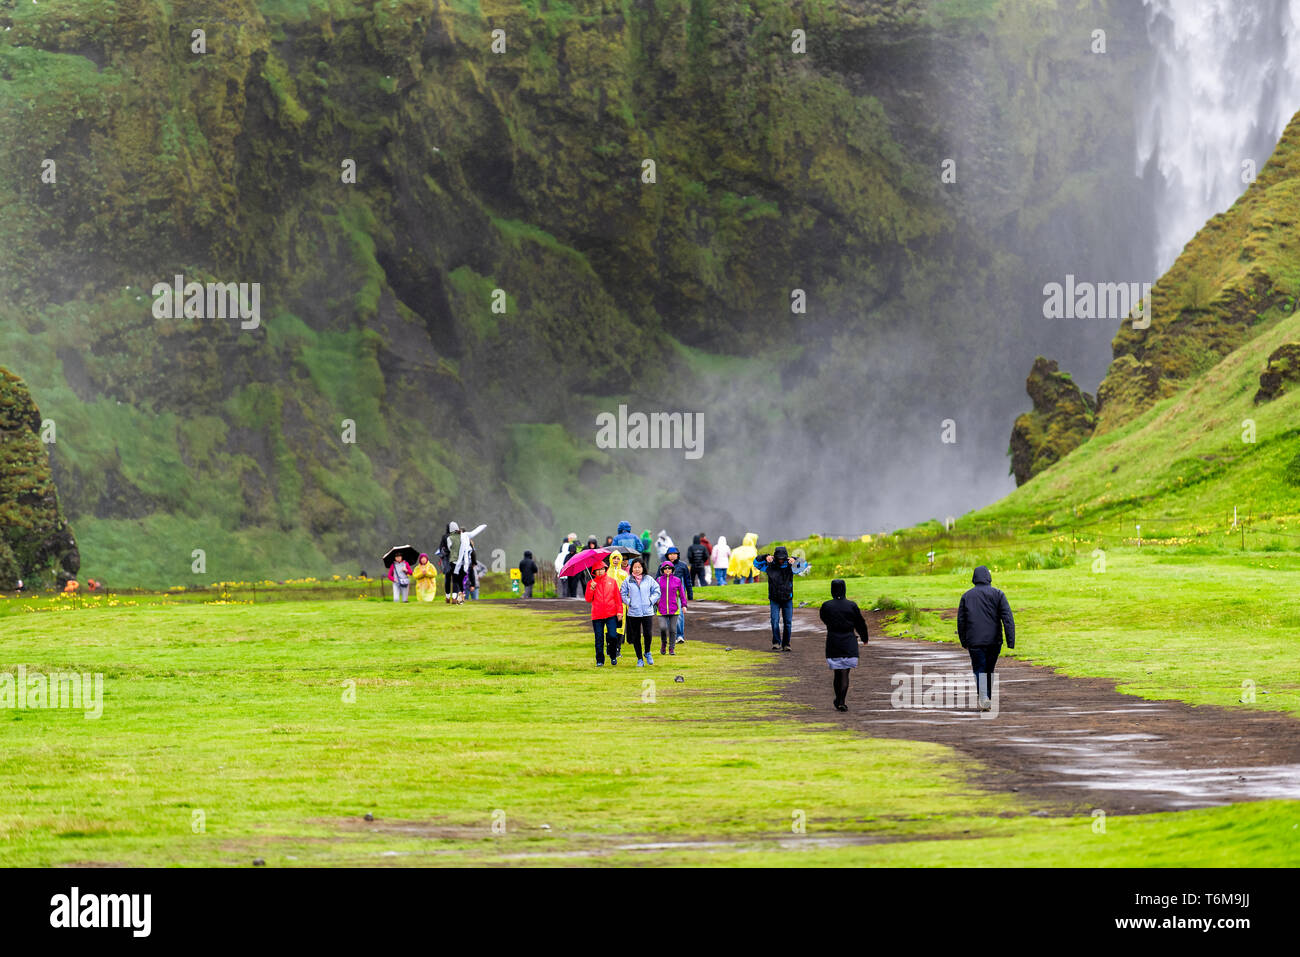 Skogafoss, Iceland - June 14, 2018: Waterfall on cliff with green grass meadow and many tourists people walking with ponchos on trail road in rainy mo - Stock Image